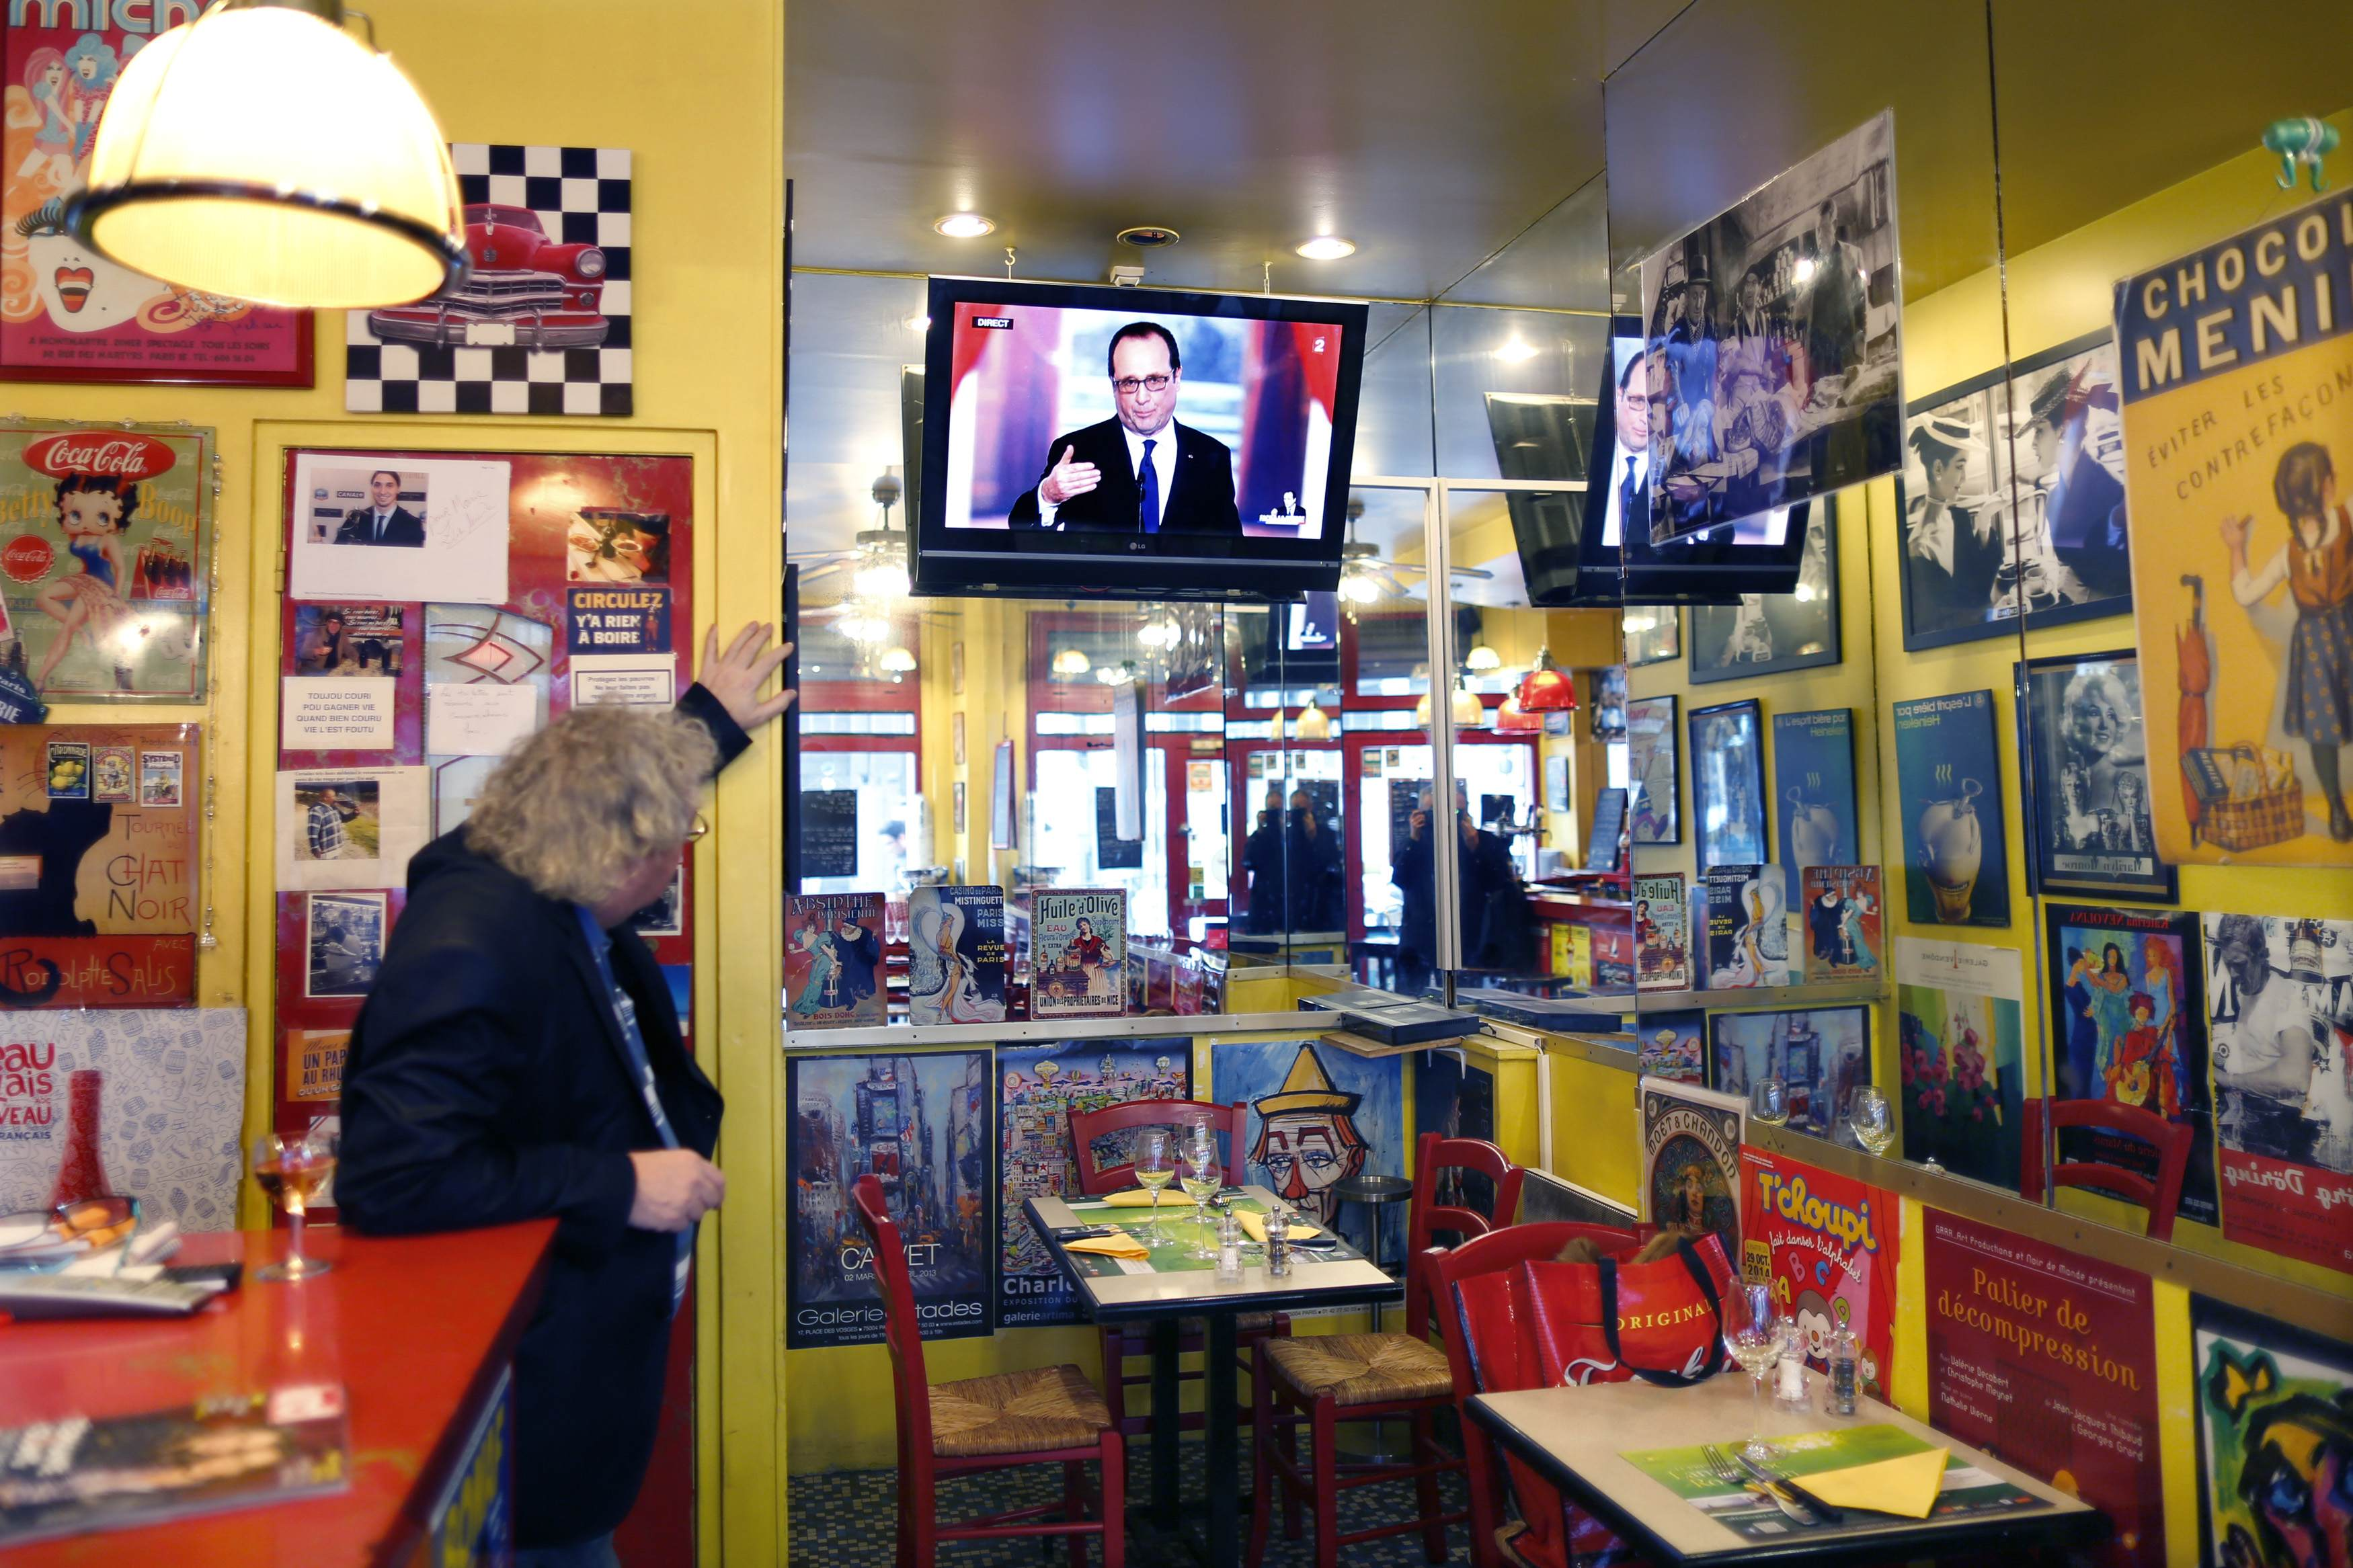 A customer looks at a television screen in a Parisian bistrot as French President Francois Hollande speaks during a news conference at the Elysee Palace in Paris February 5, 2015. Hollande, whose popularity has risen on the back of his handling of the Charlie Hebdo attacks, is expected to make announcements on plans for a new voluntary civilian service for school-leavers and to address the sense of alienation in France's poor suburbs. His comments on efforts to reach a new debt deal between Greece and EU partners will also be closely watched. REUTERS/Charles Platiau